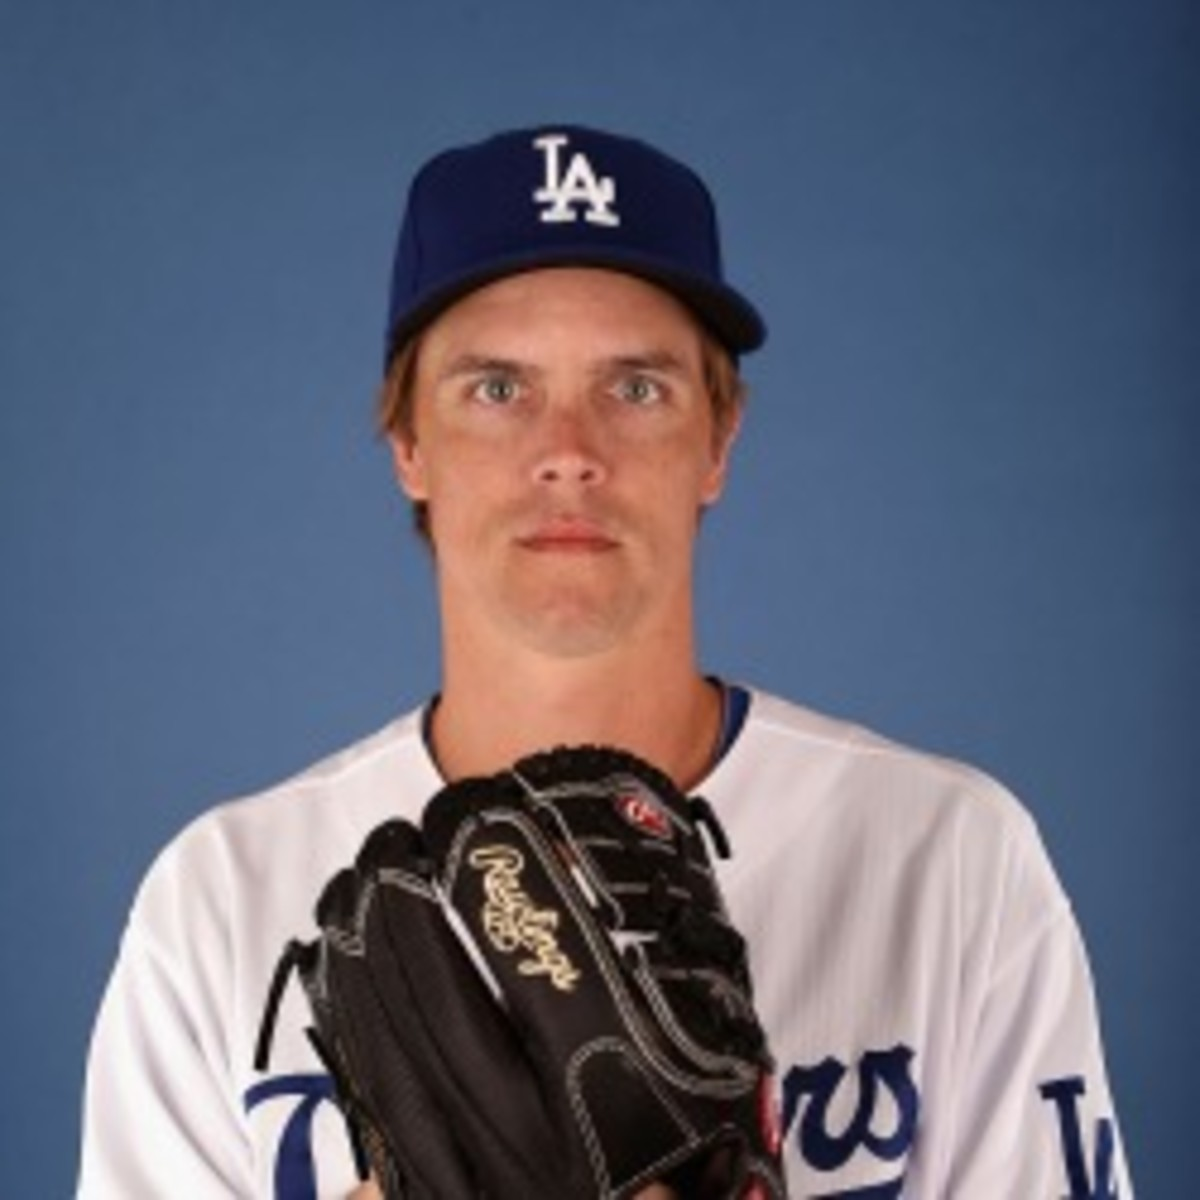 Dodgers pitcher Zack Greinke said he signed with the team because of money. (Christian Petersen/Getty Images)